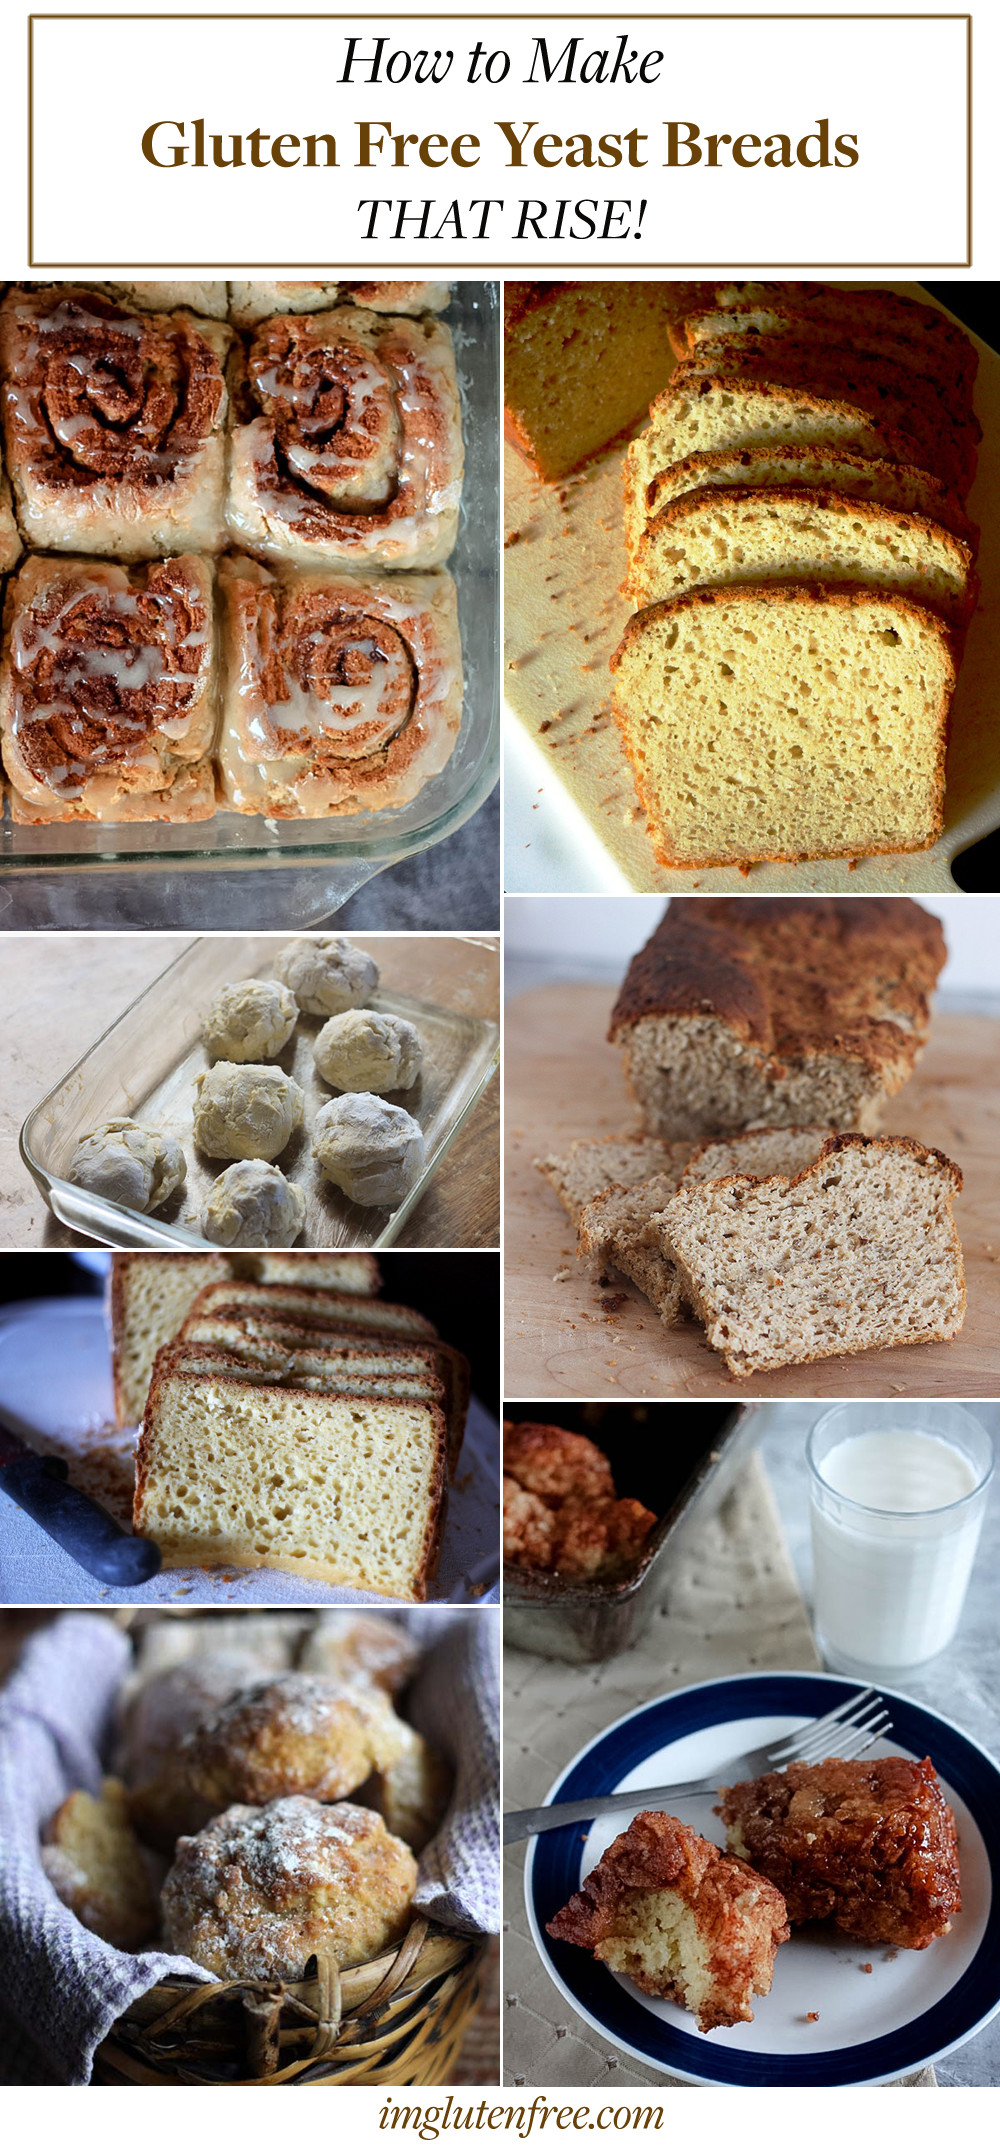 How to Make Gluten Free Yeast Breads that Rise!